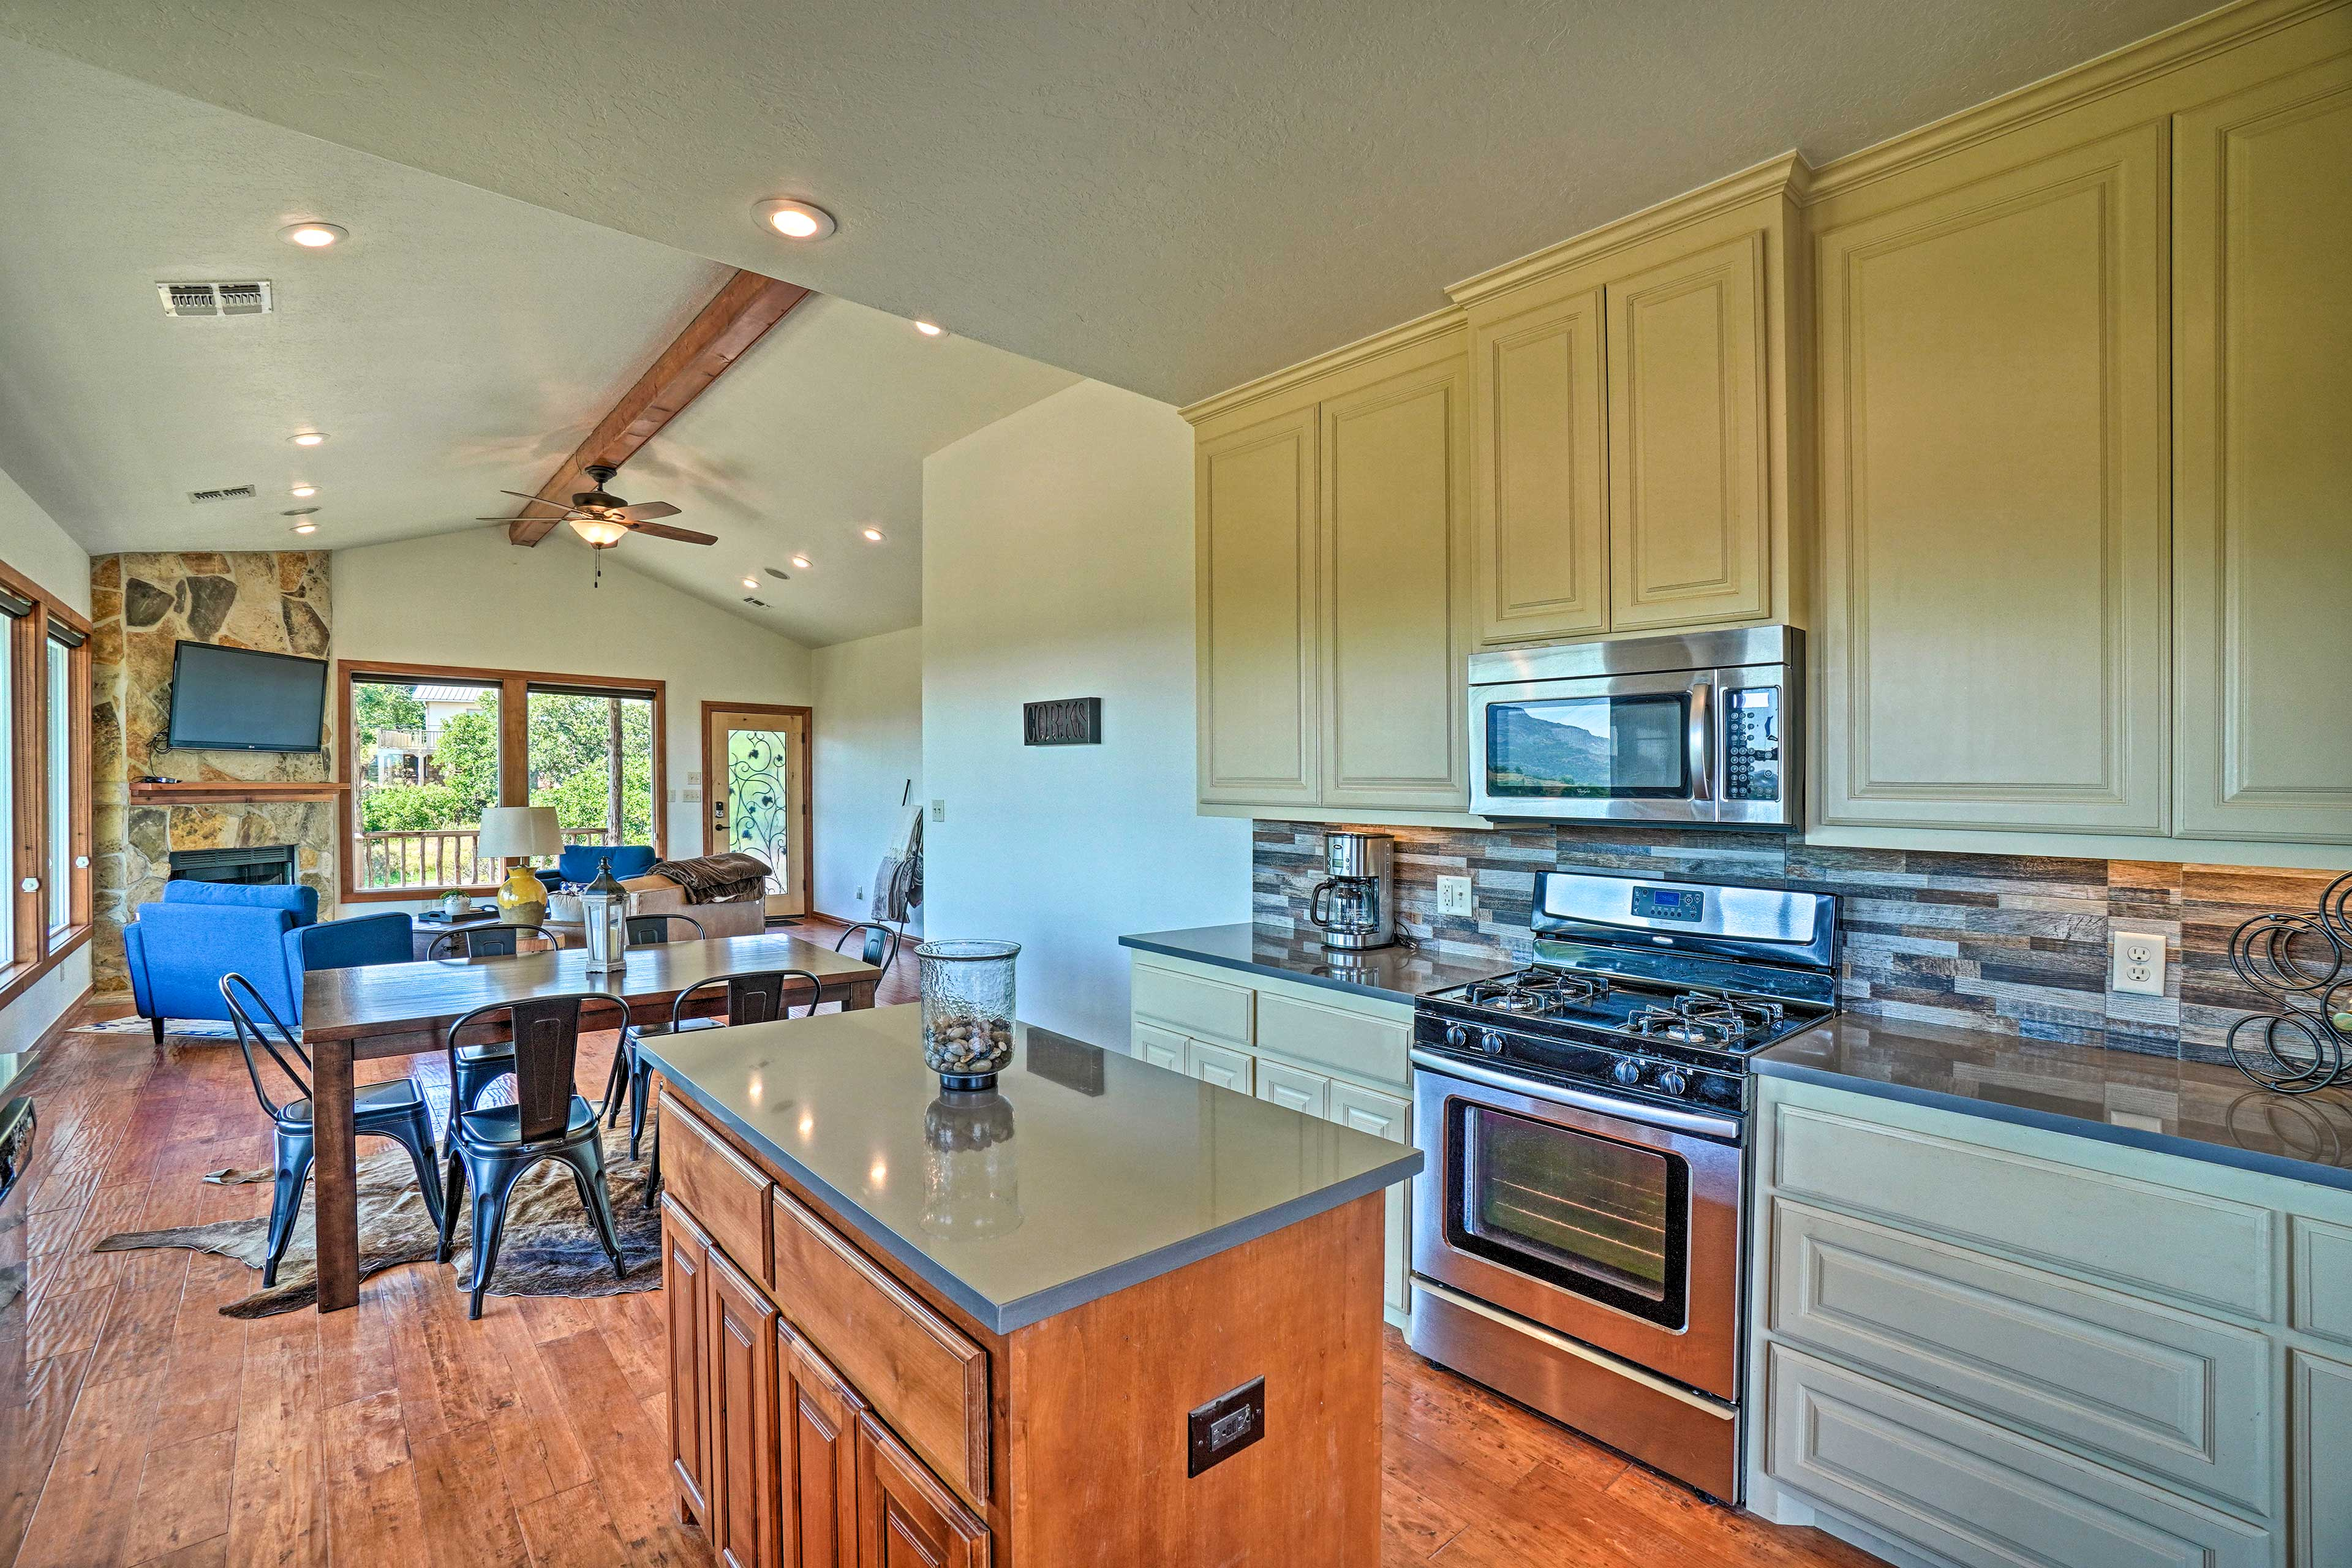 Cook up your southern favorites in the fully equipped kitchen.